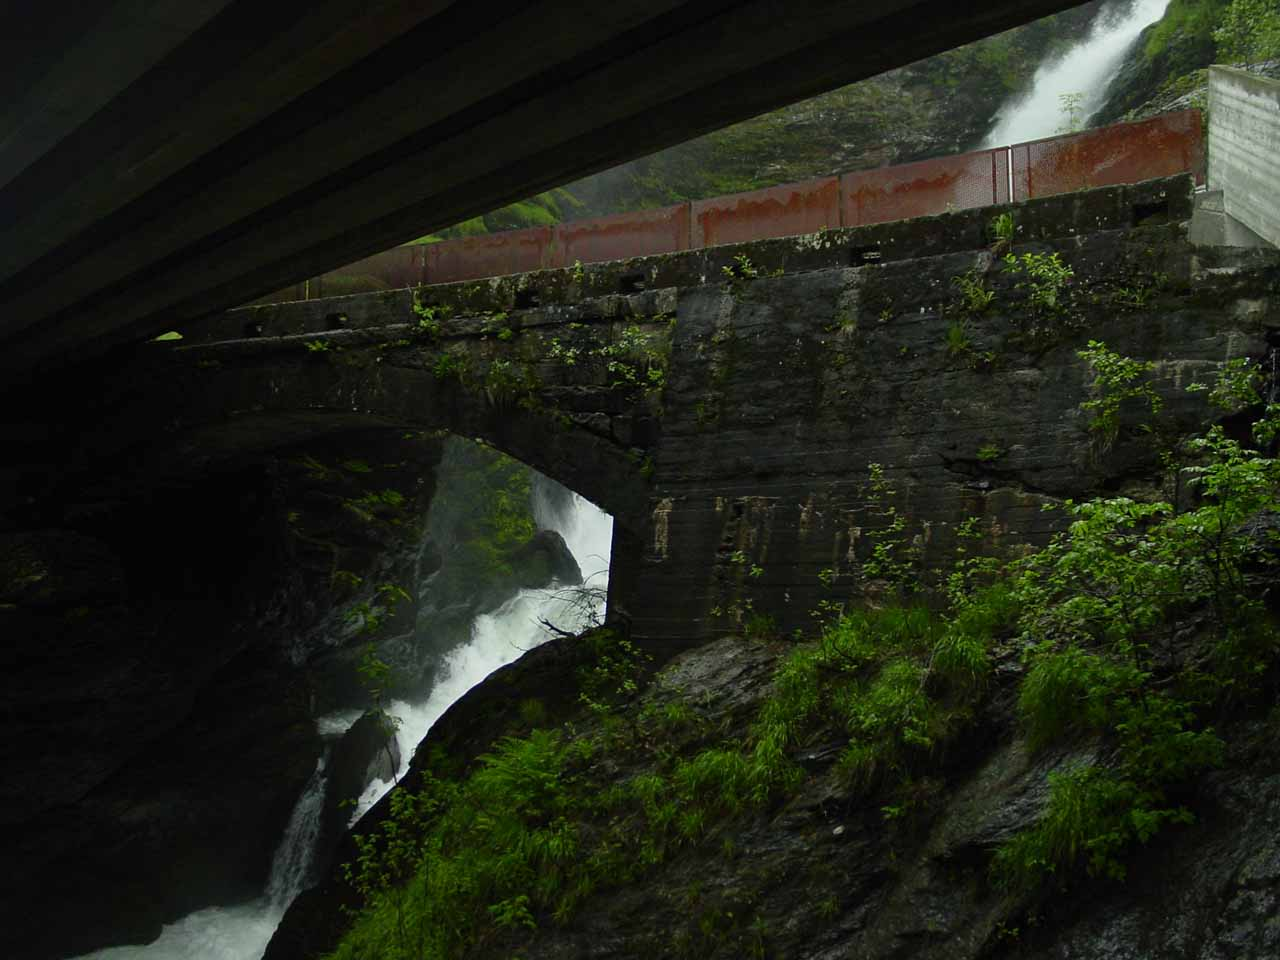 Looking up at Svandalsfossen from underneath the Rv520 road bridge